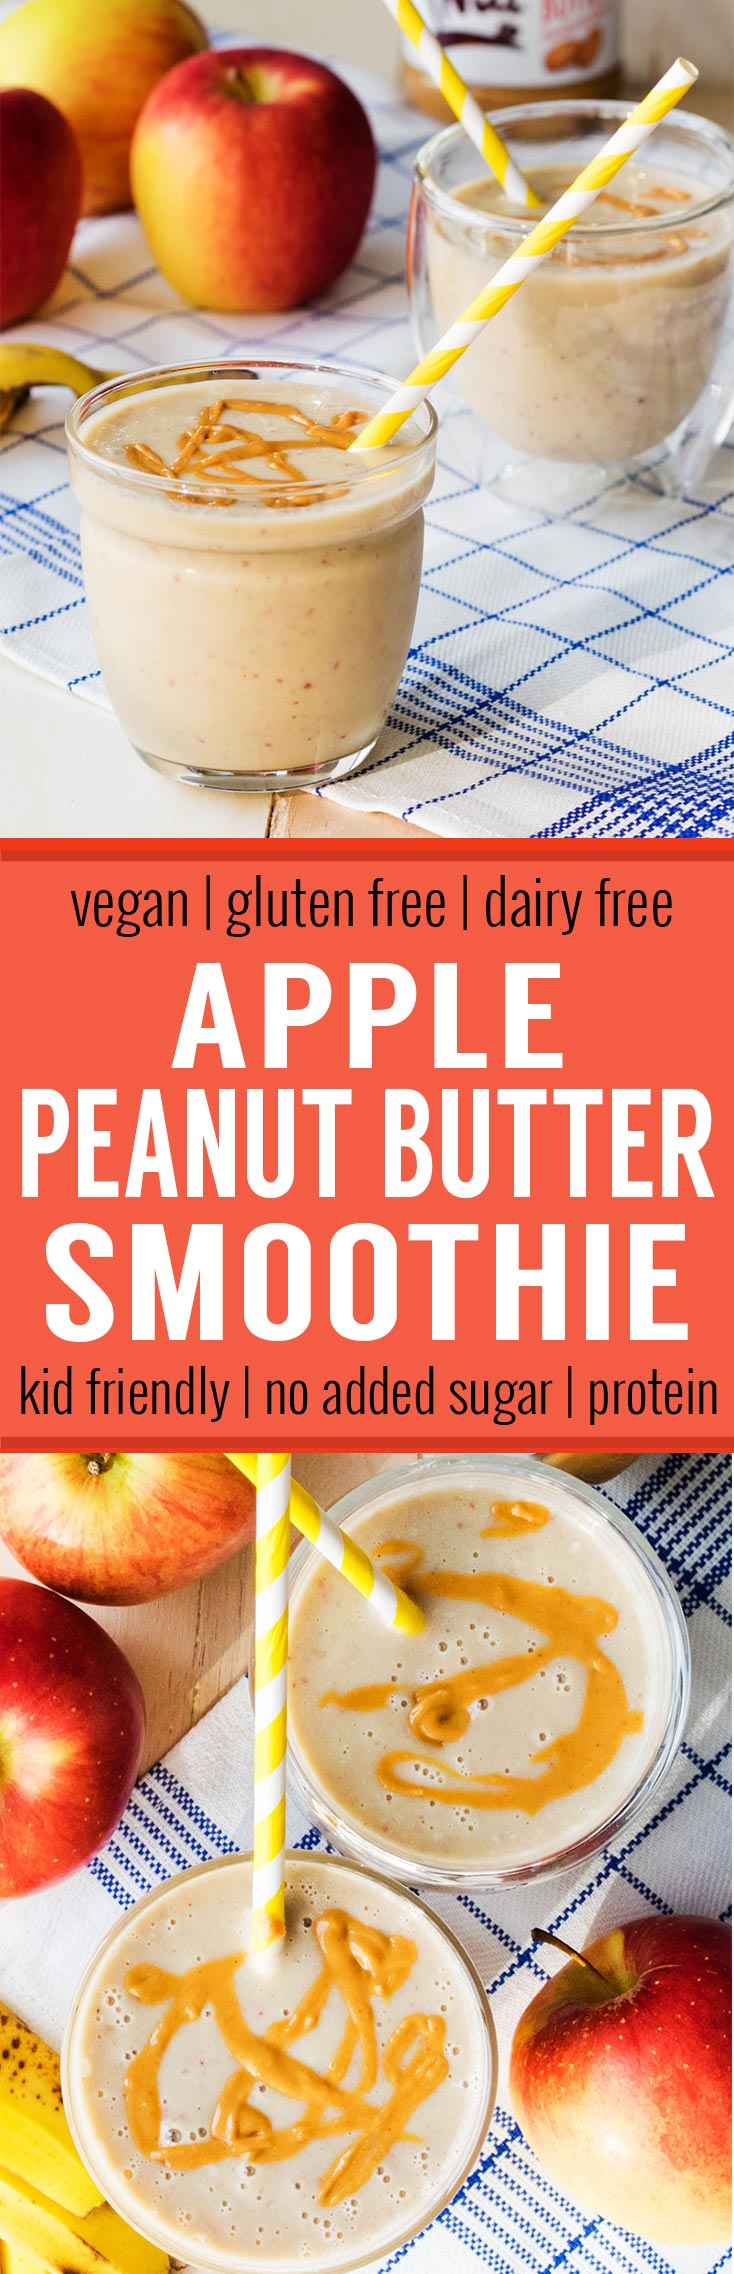 Apple Peanut Butter Smoothie (Vegan, GF, Dairy Free) - totally kid friendly breakfast or snack with no added sugar. The recipe uses two fruits - apples and bananas, and has natural peanut butter for protein.